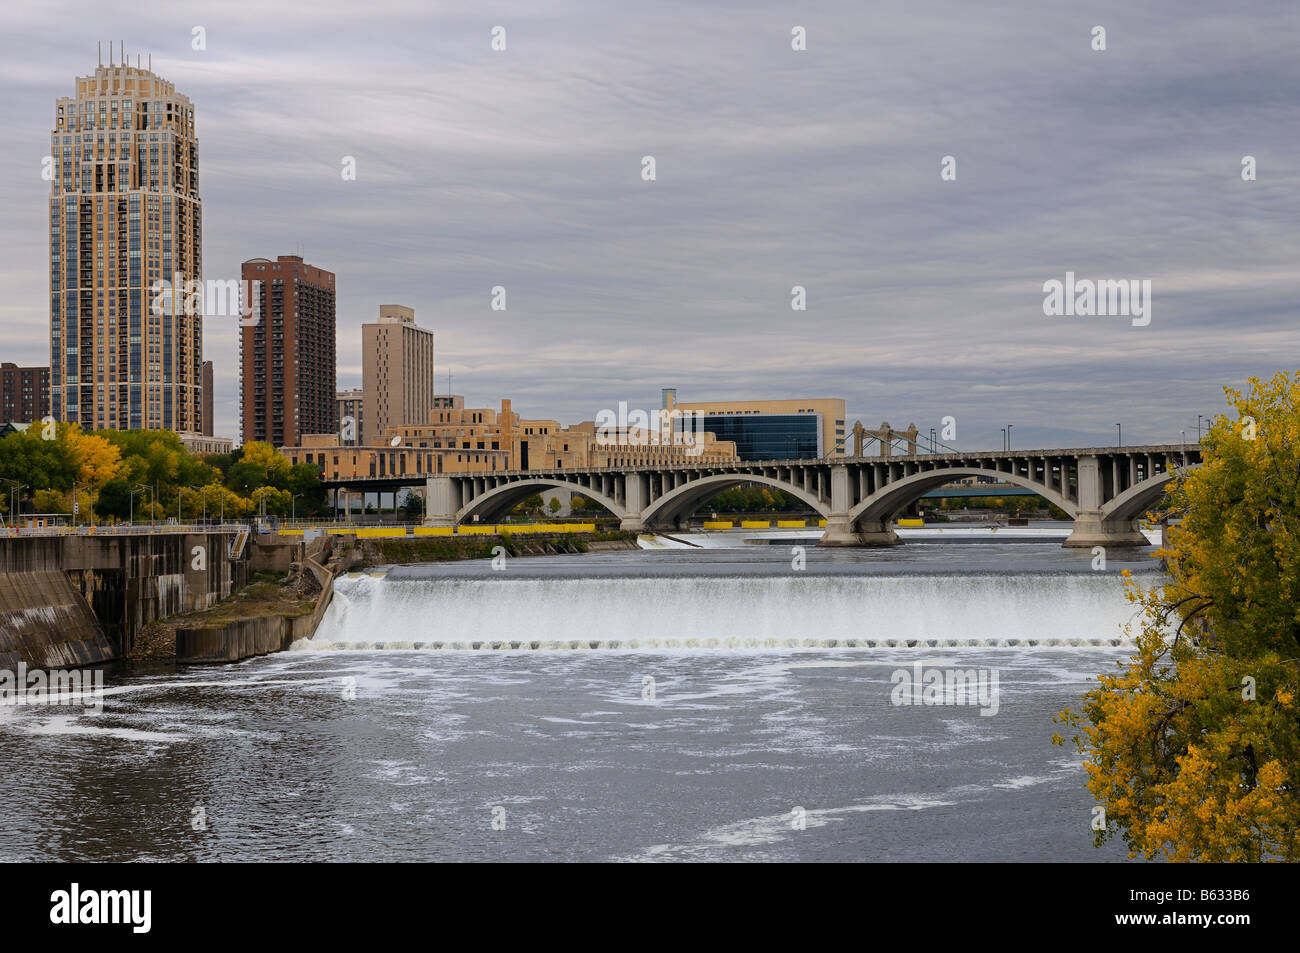 St Anthony Falls on the Mississippi river in Minneapolis with The Carlyle highrise and Third Avenue bridge with - Stock Image